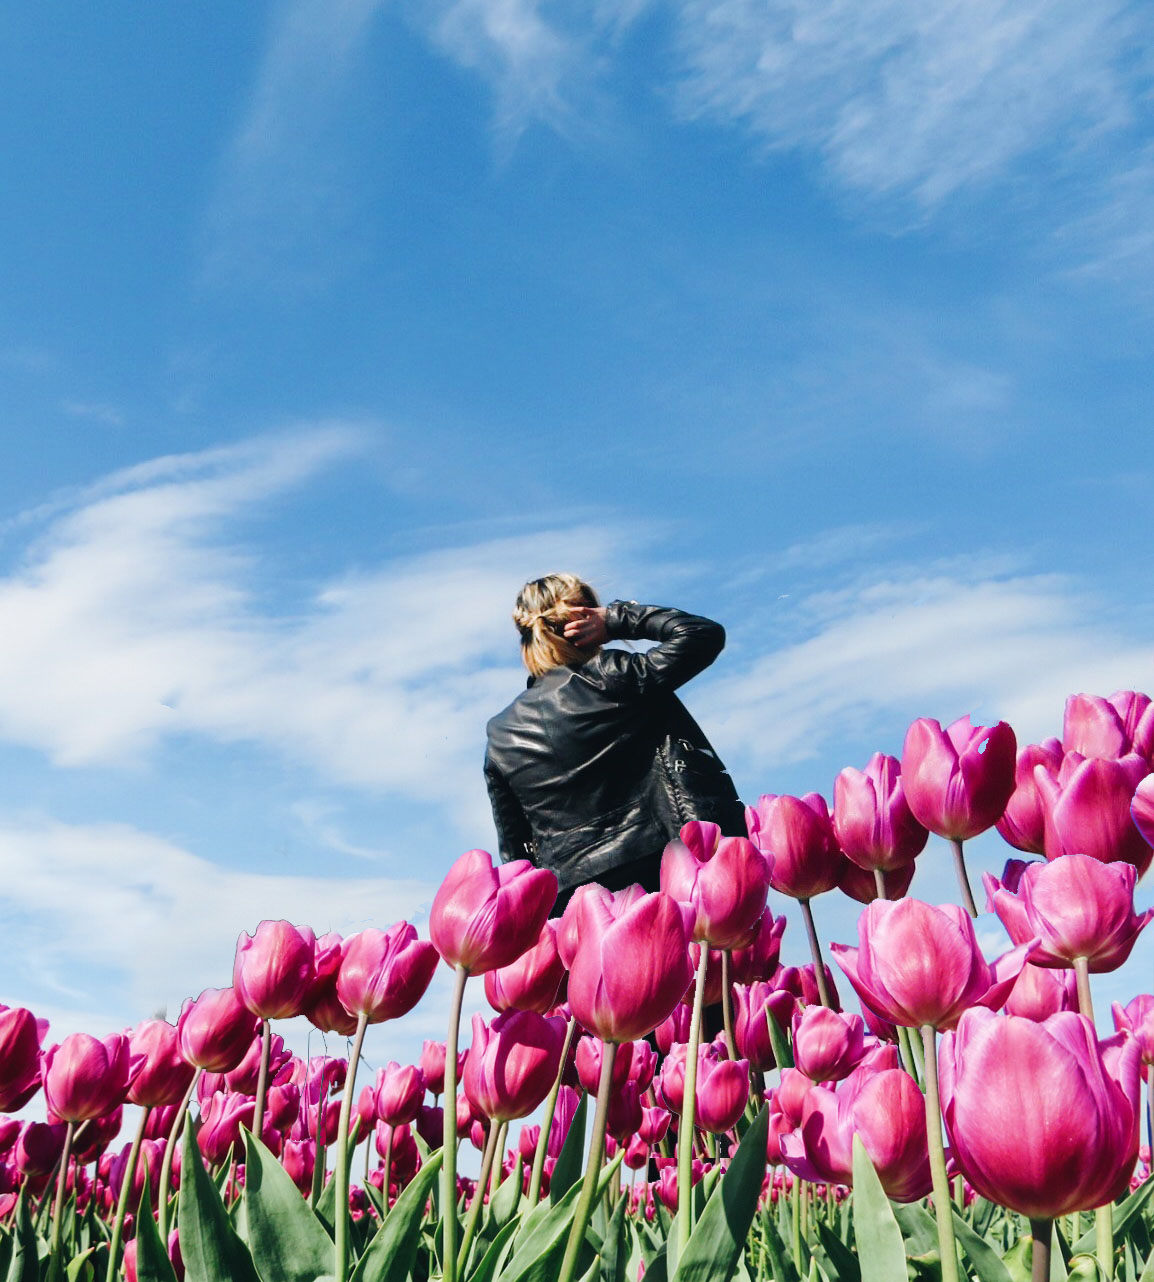 Visiting the tulip fields during their limited season at Lisse and  Keukenhof